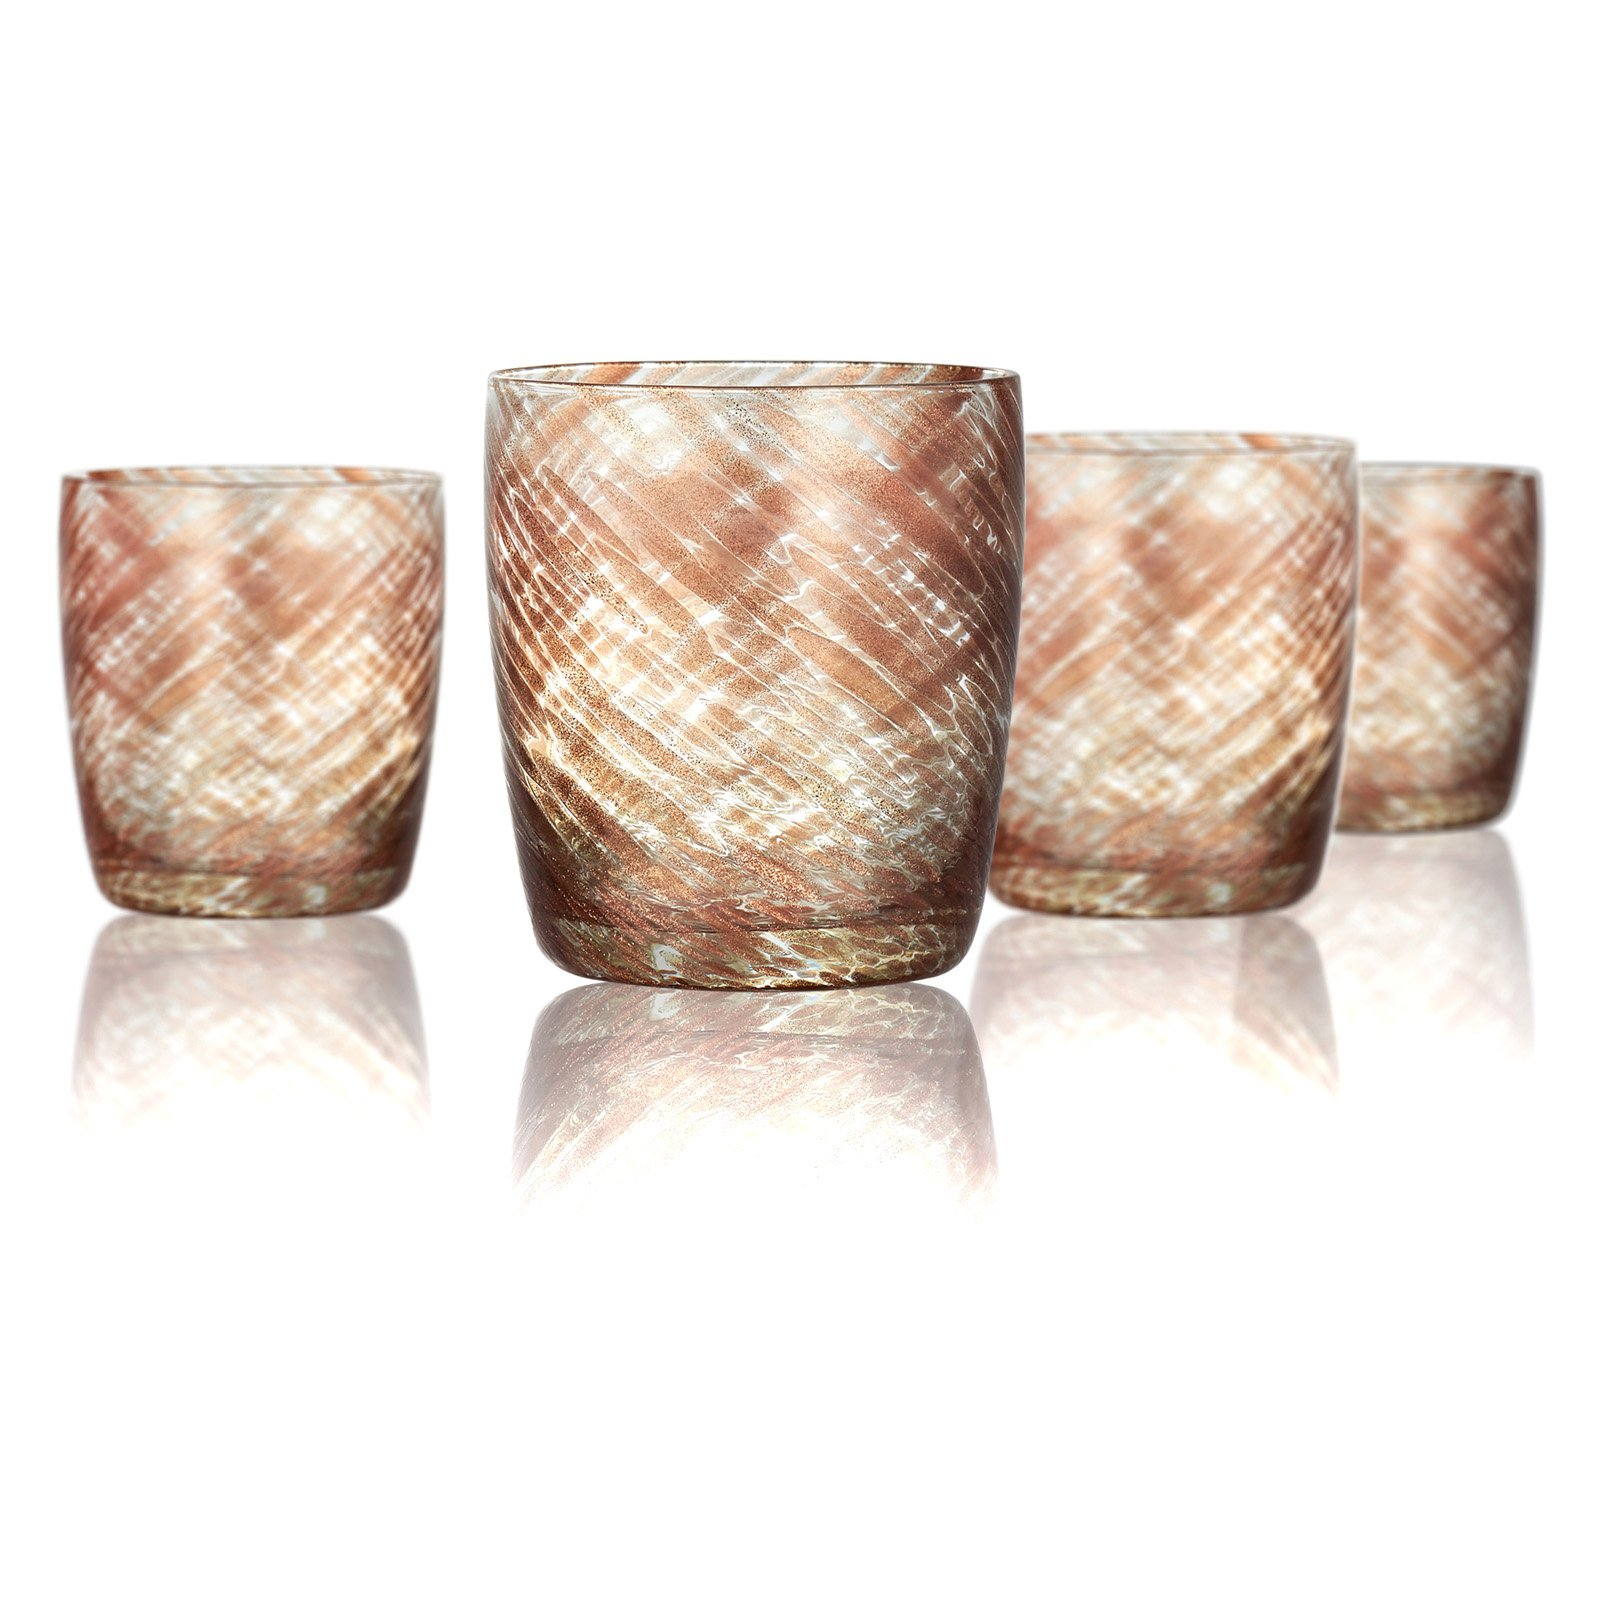 Artland Misty DOF Glasses - Set of 4